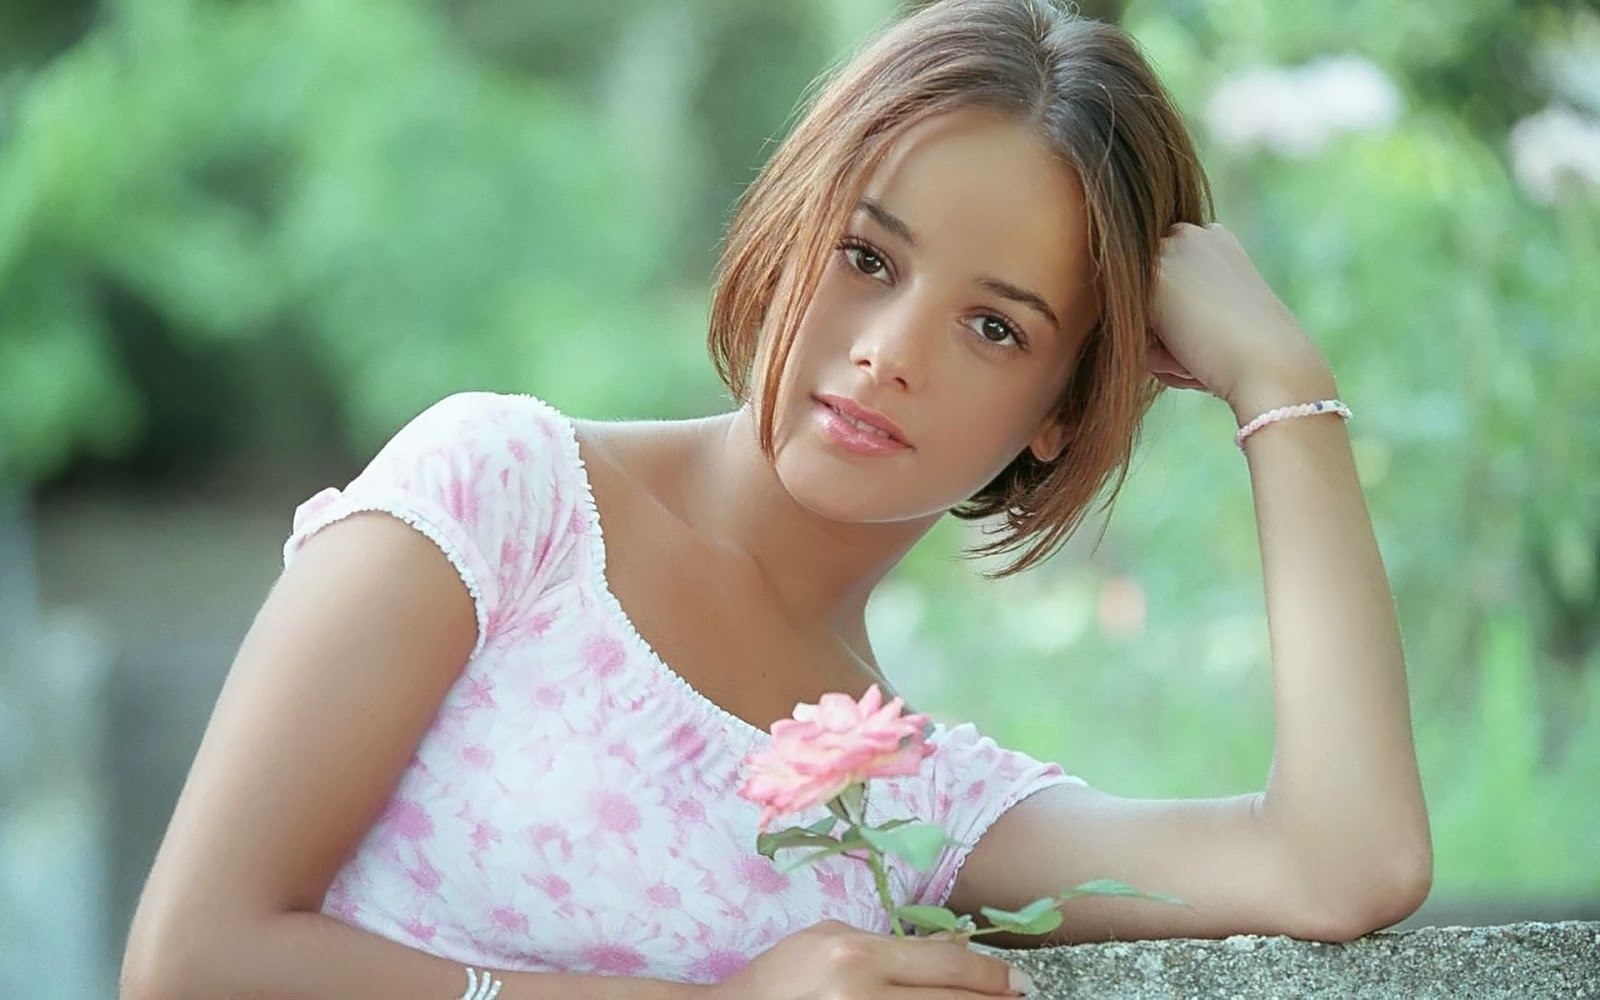 sweet girl alizee with rose hd wallpaper | hd celebrities wallpapers